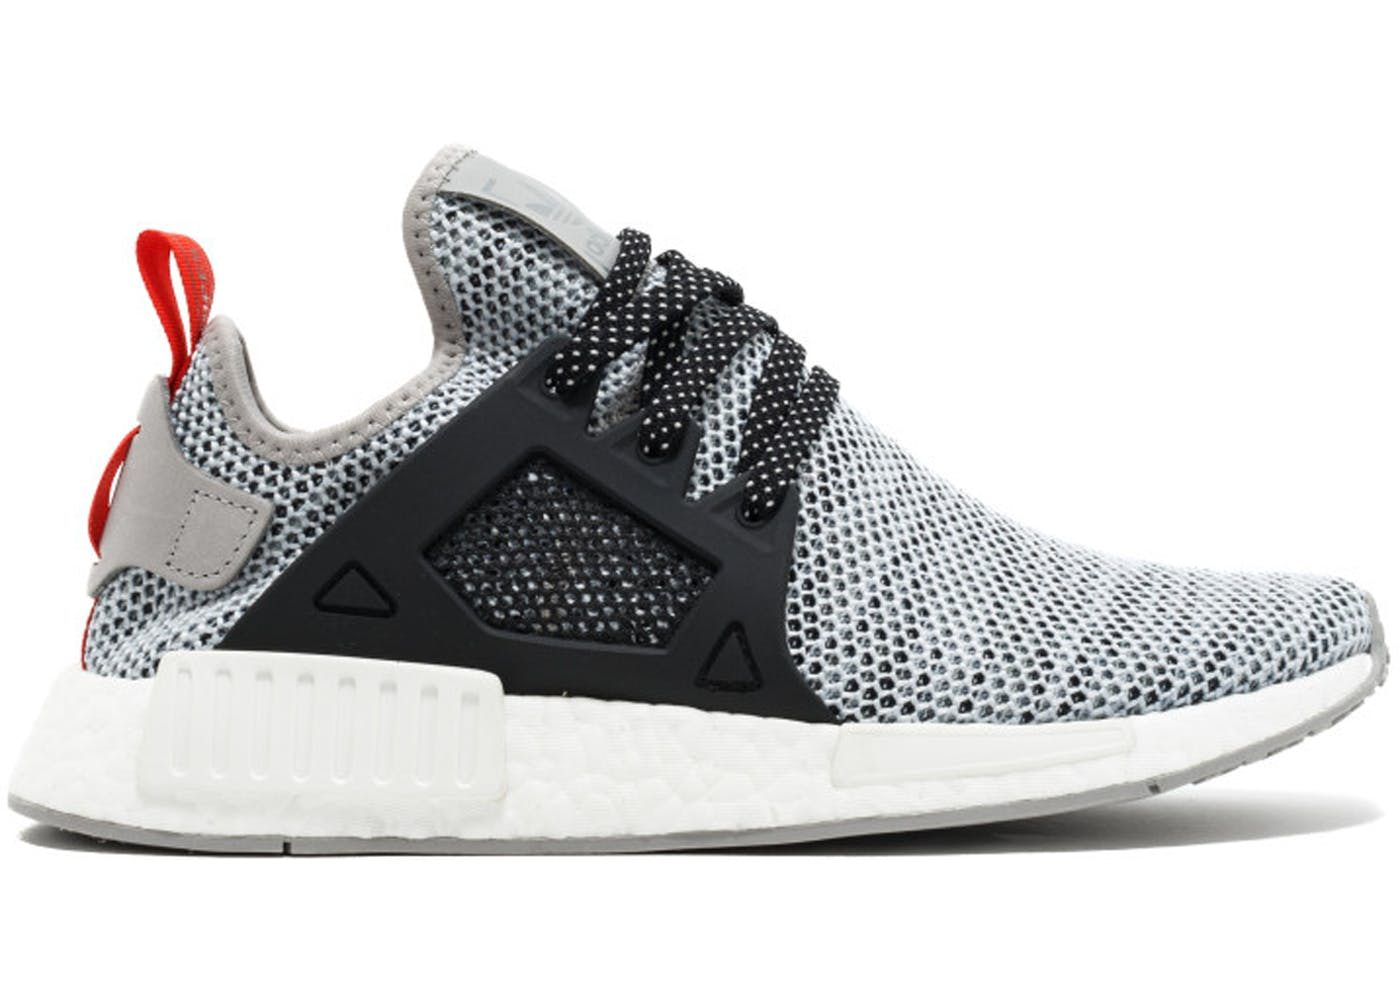 Best Deals On Adidas Nmd Xr1 Pk Glitch Camo SuperOffers